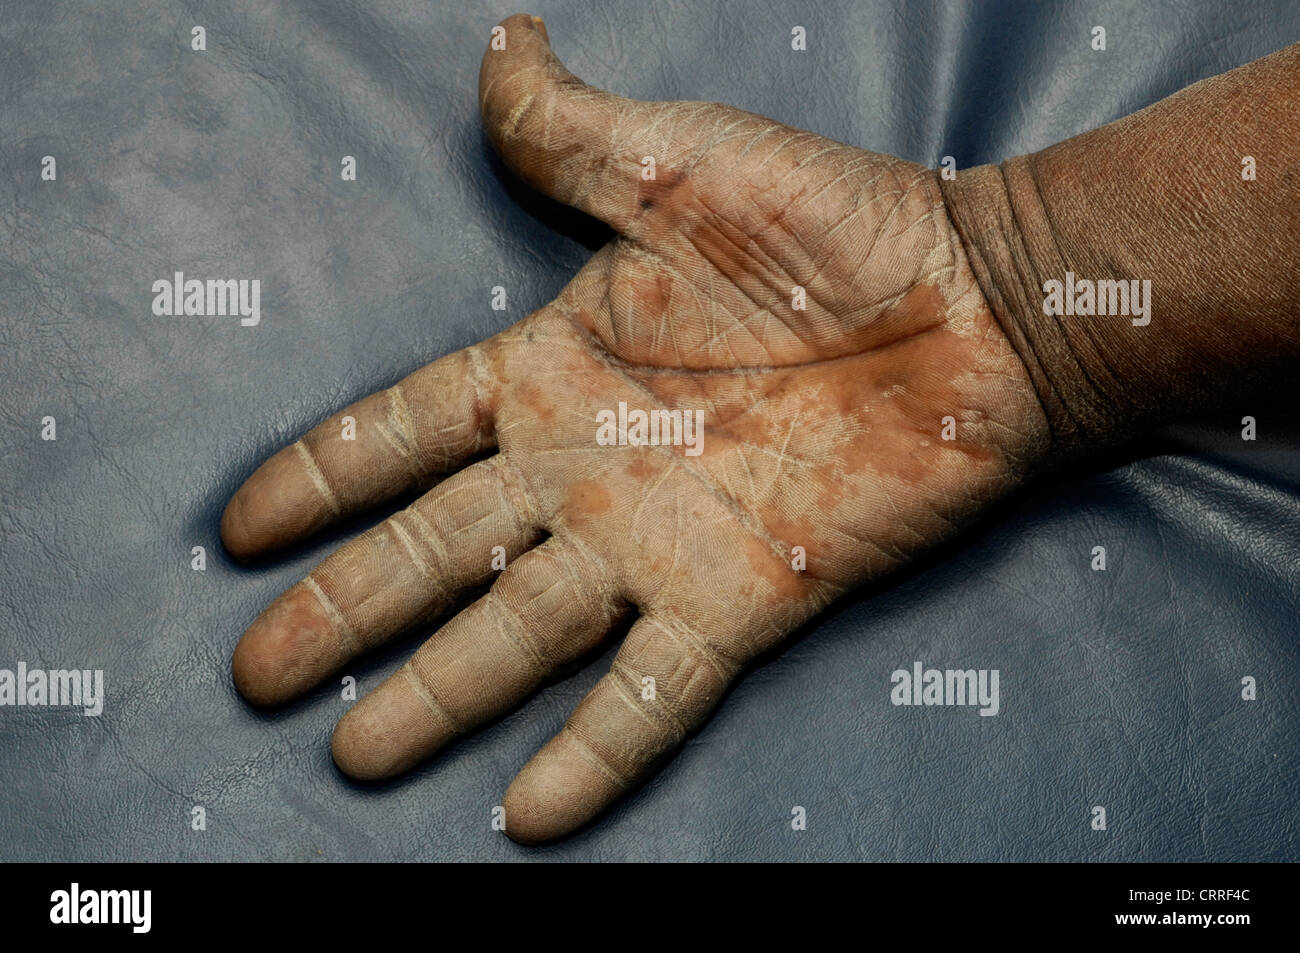 A patient with ichthyosis vulgaris affecting his hand ...